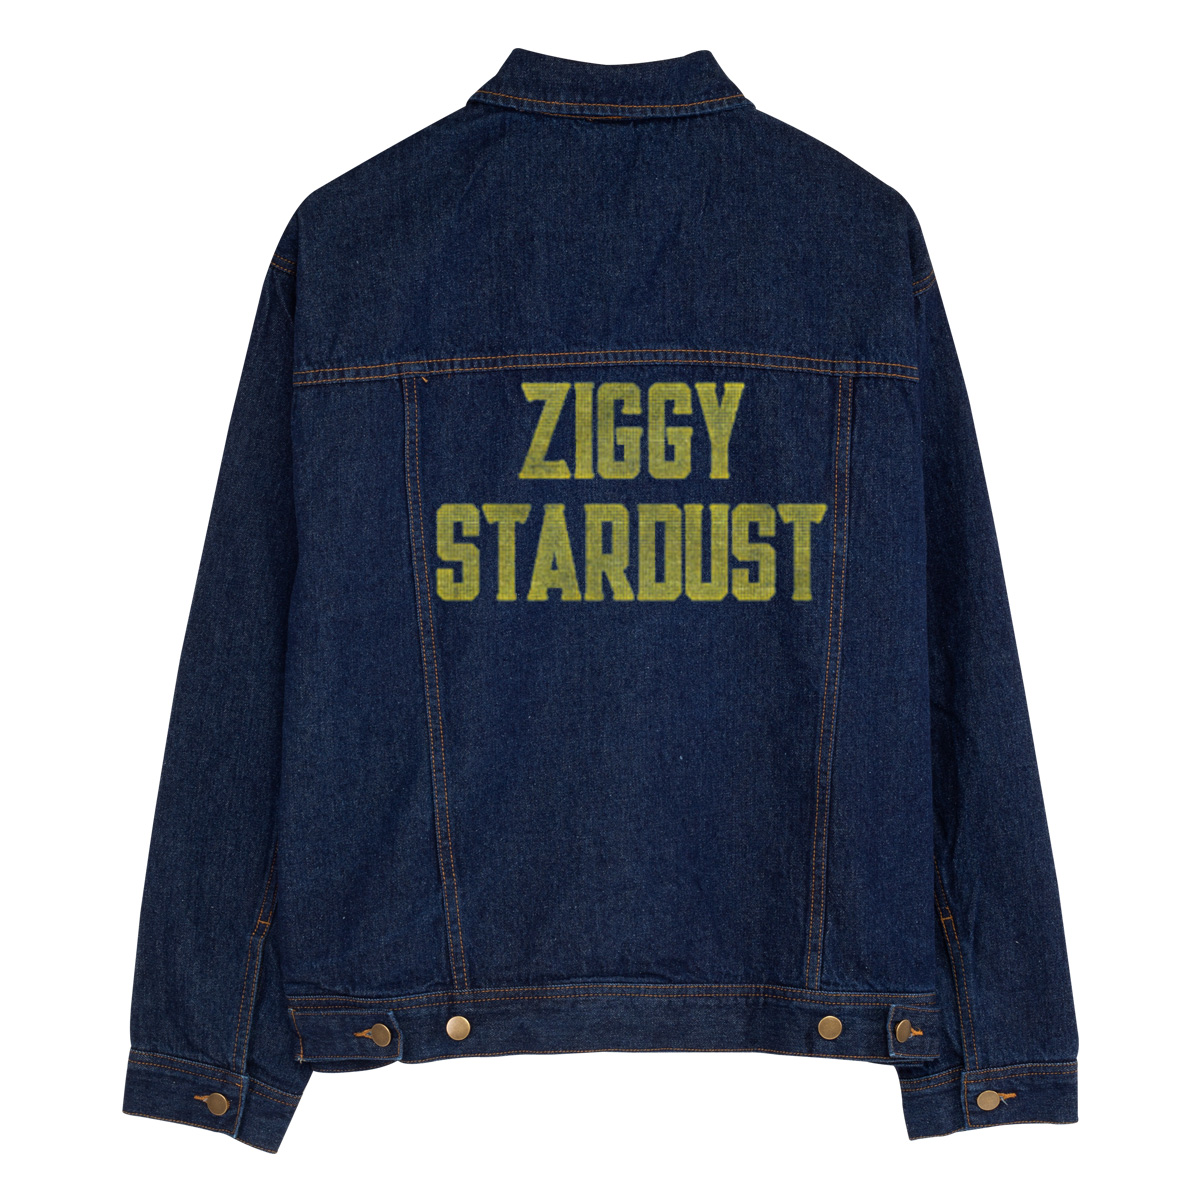 Golden Stardust Personalized Jean Jacket